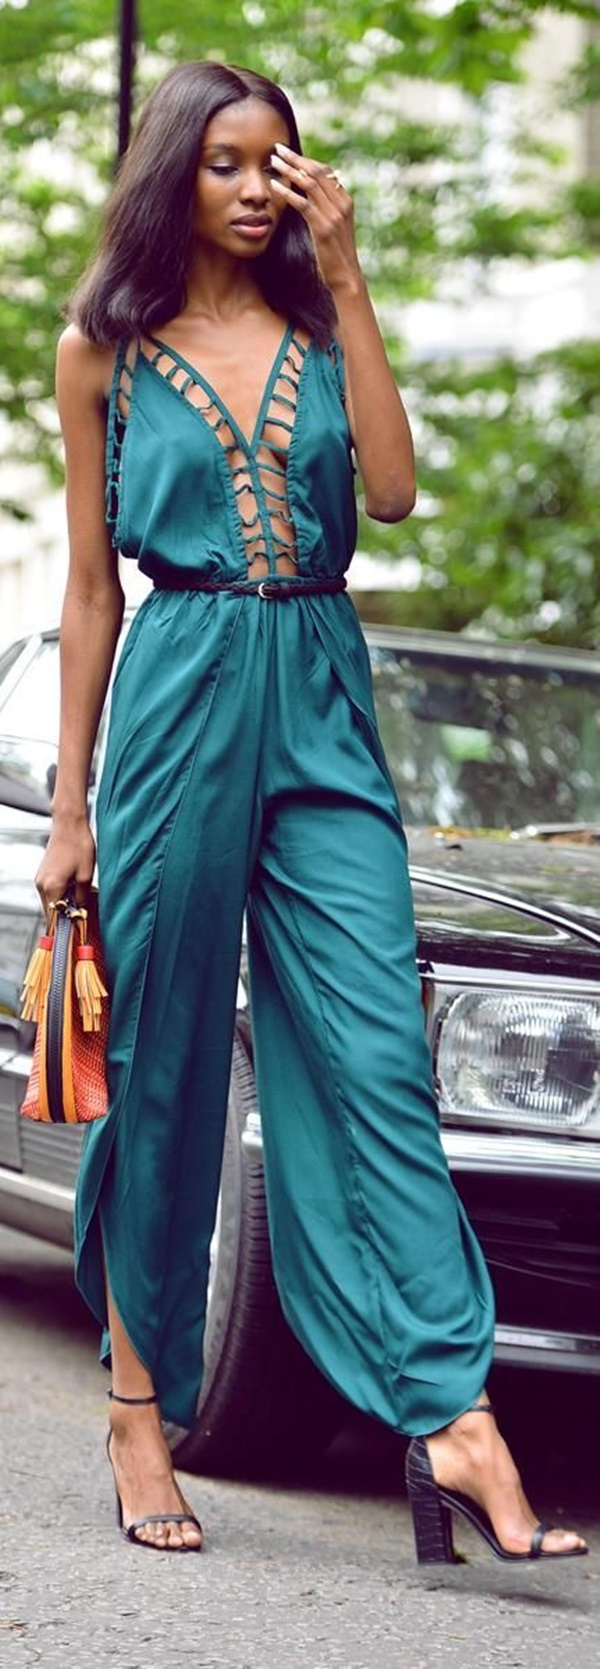 Hot Jumpsuit outfit ideas for Girls15.1